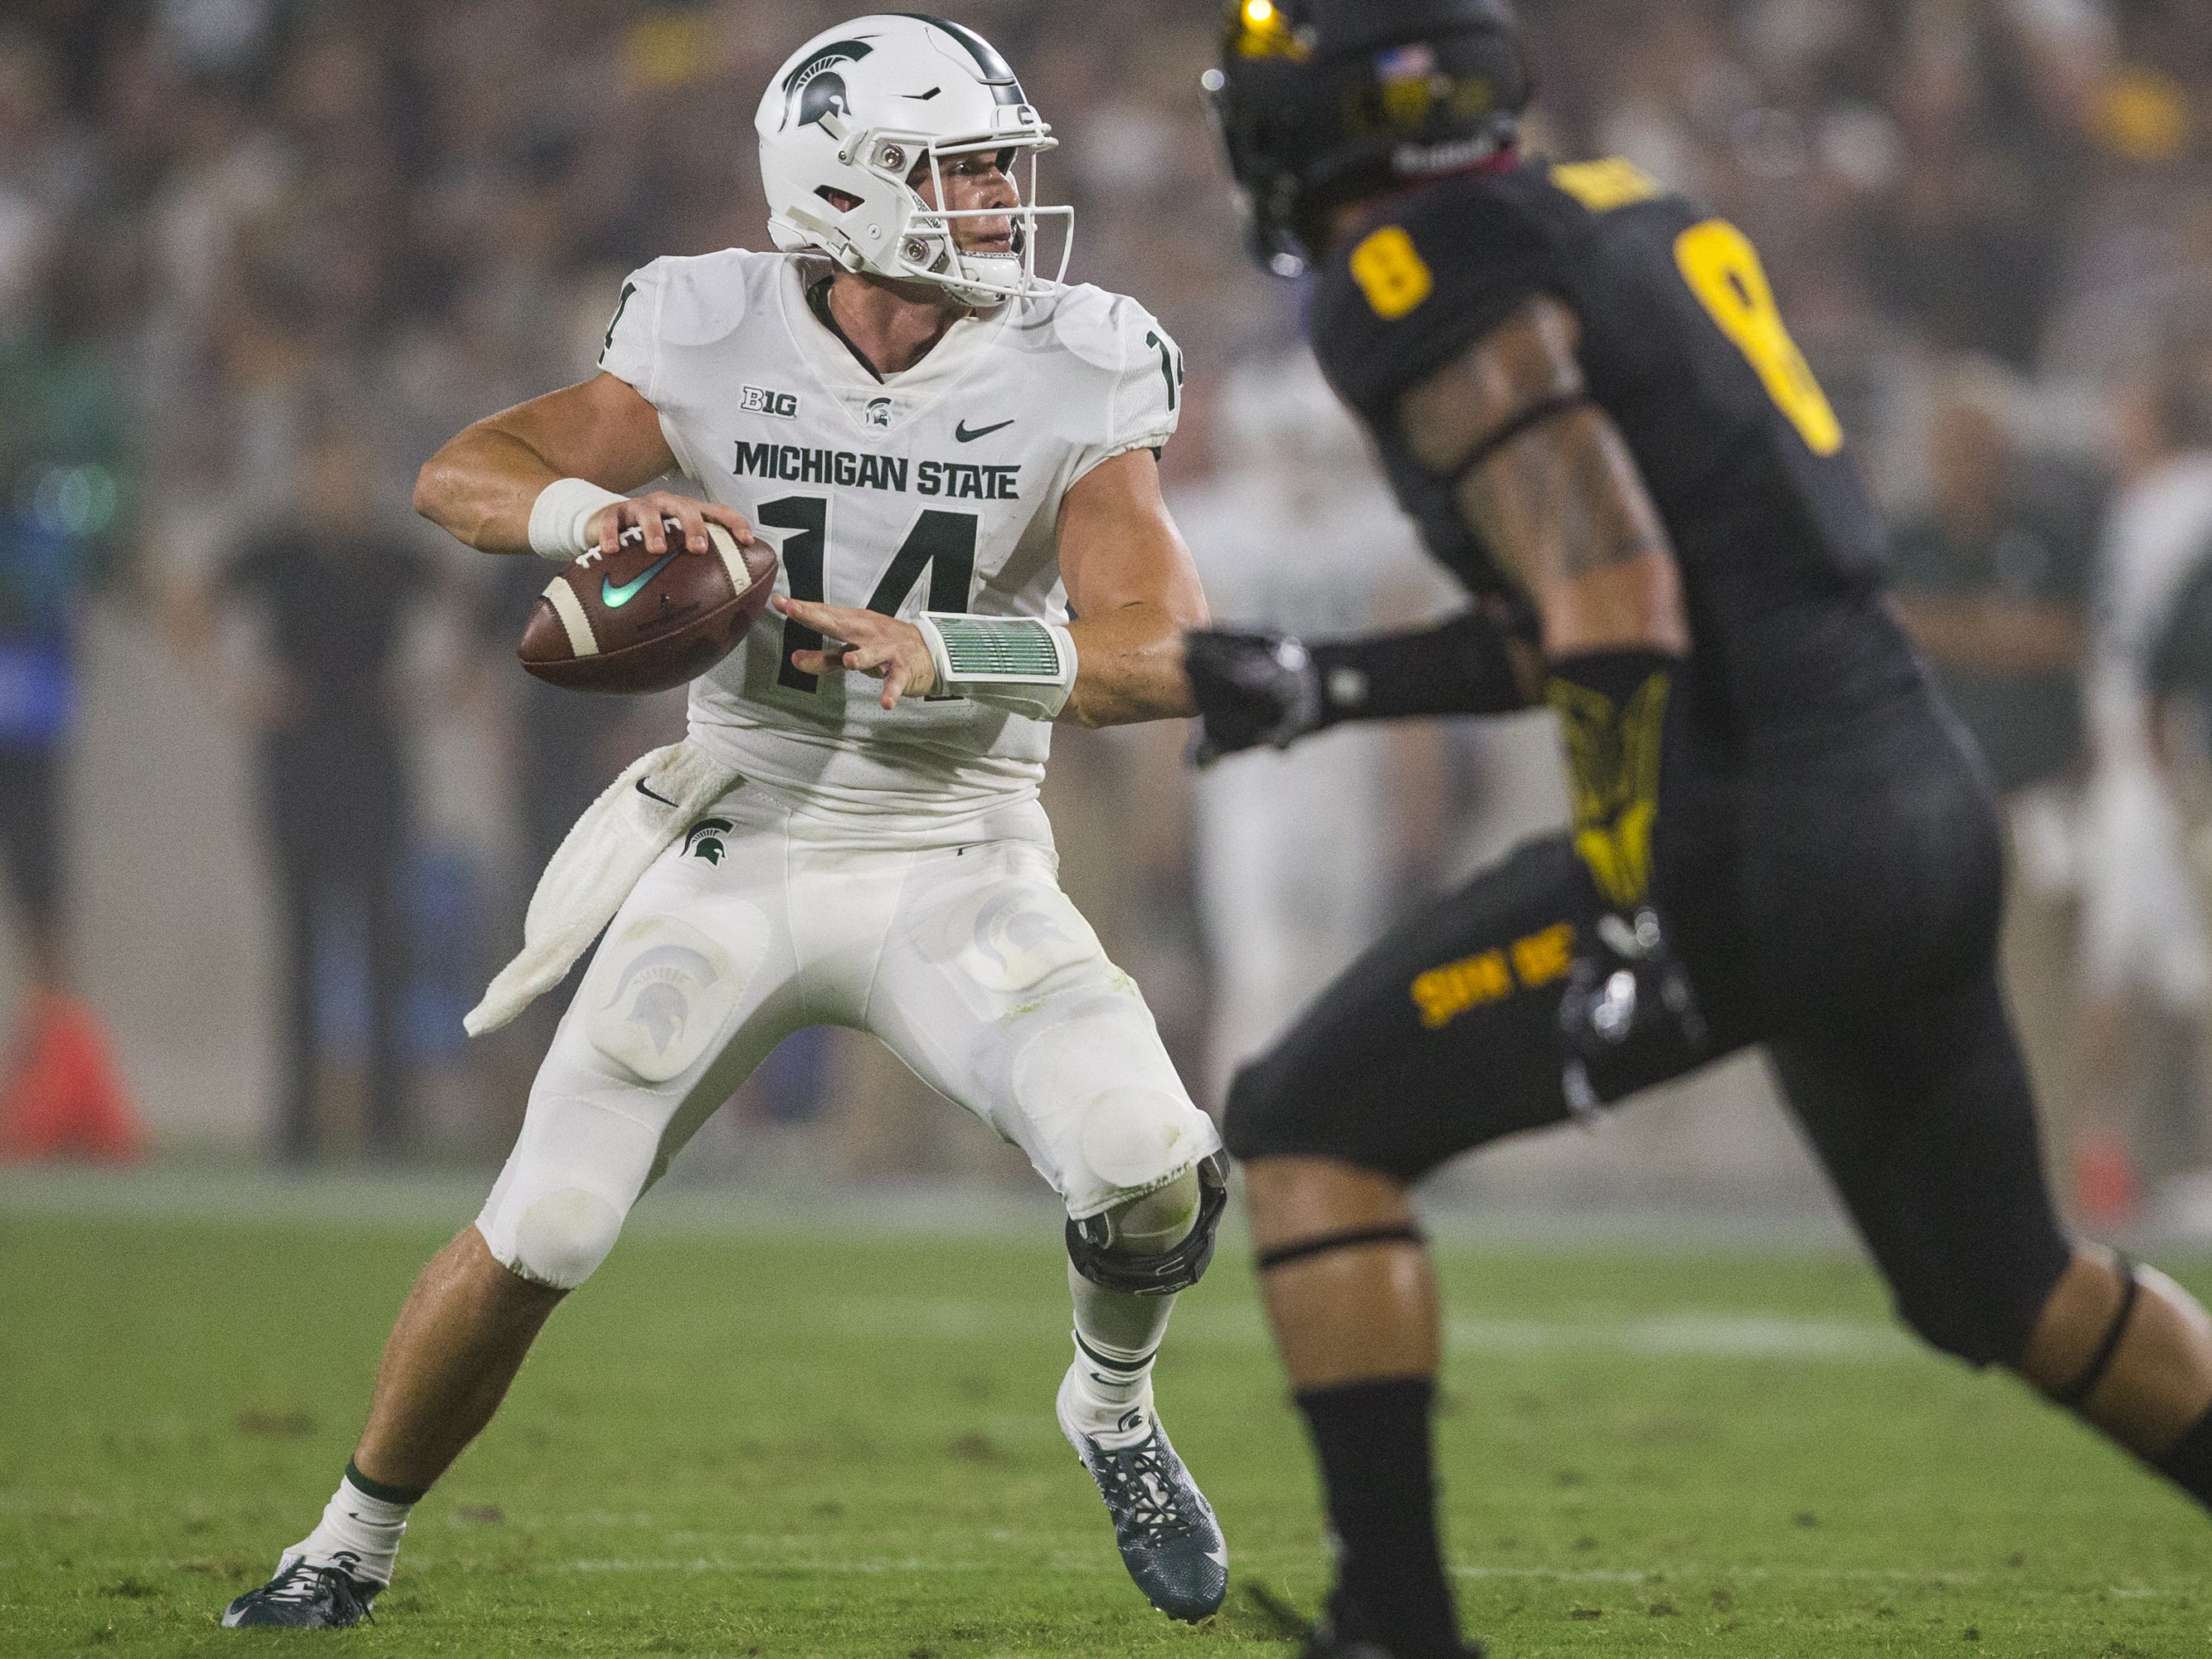 Michigan State's Brian Lewerke throws against Arizona State in the 2nd quarter on Saturday, Sept. 8, 2018, at Sun Devil Stadium in Tempe, Ariz.